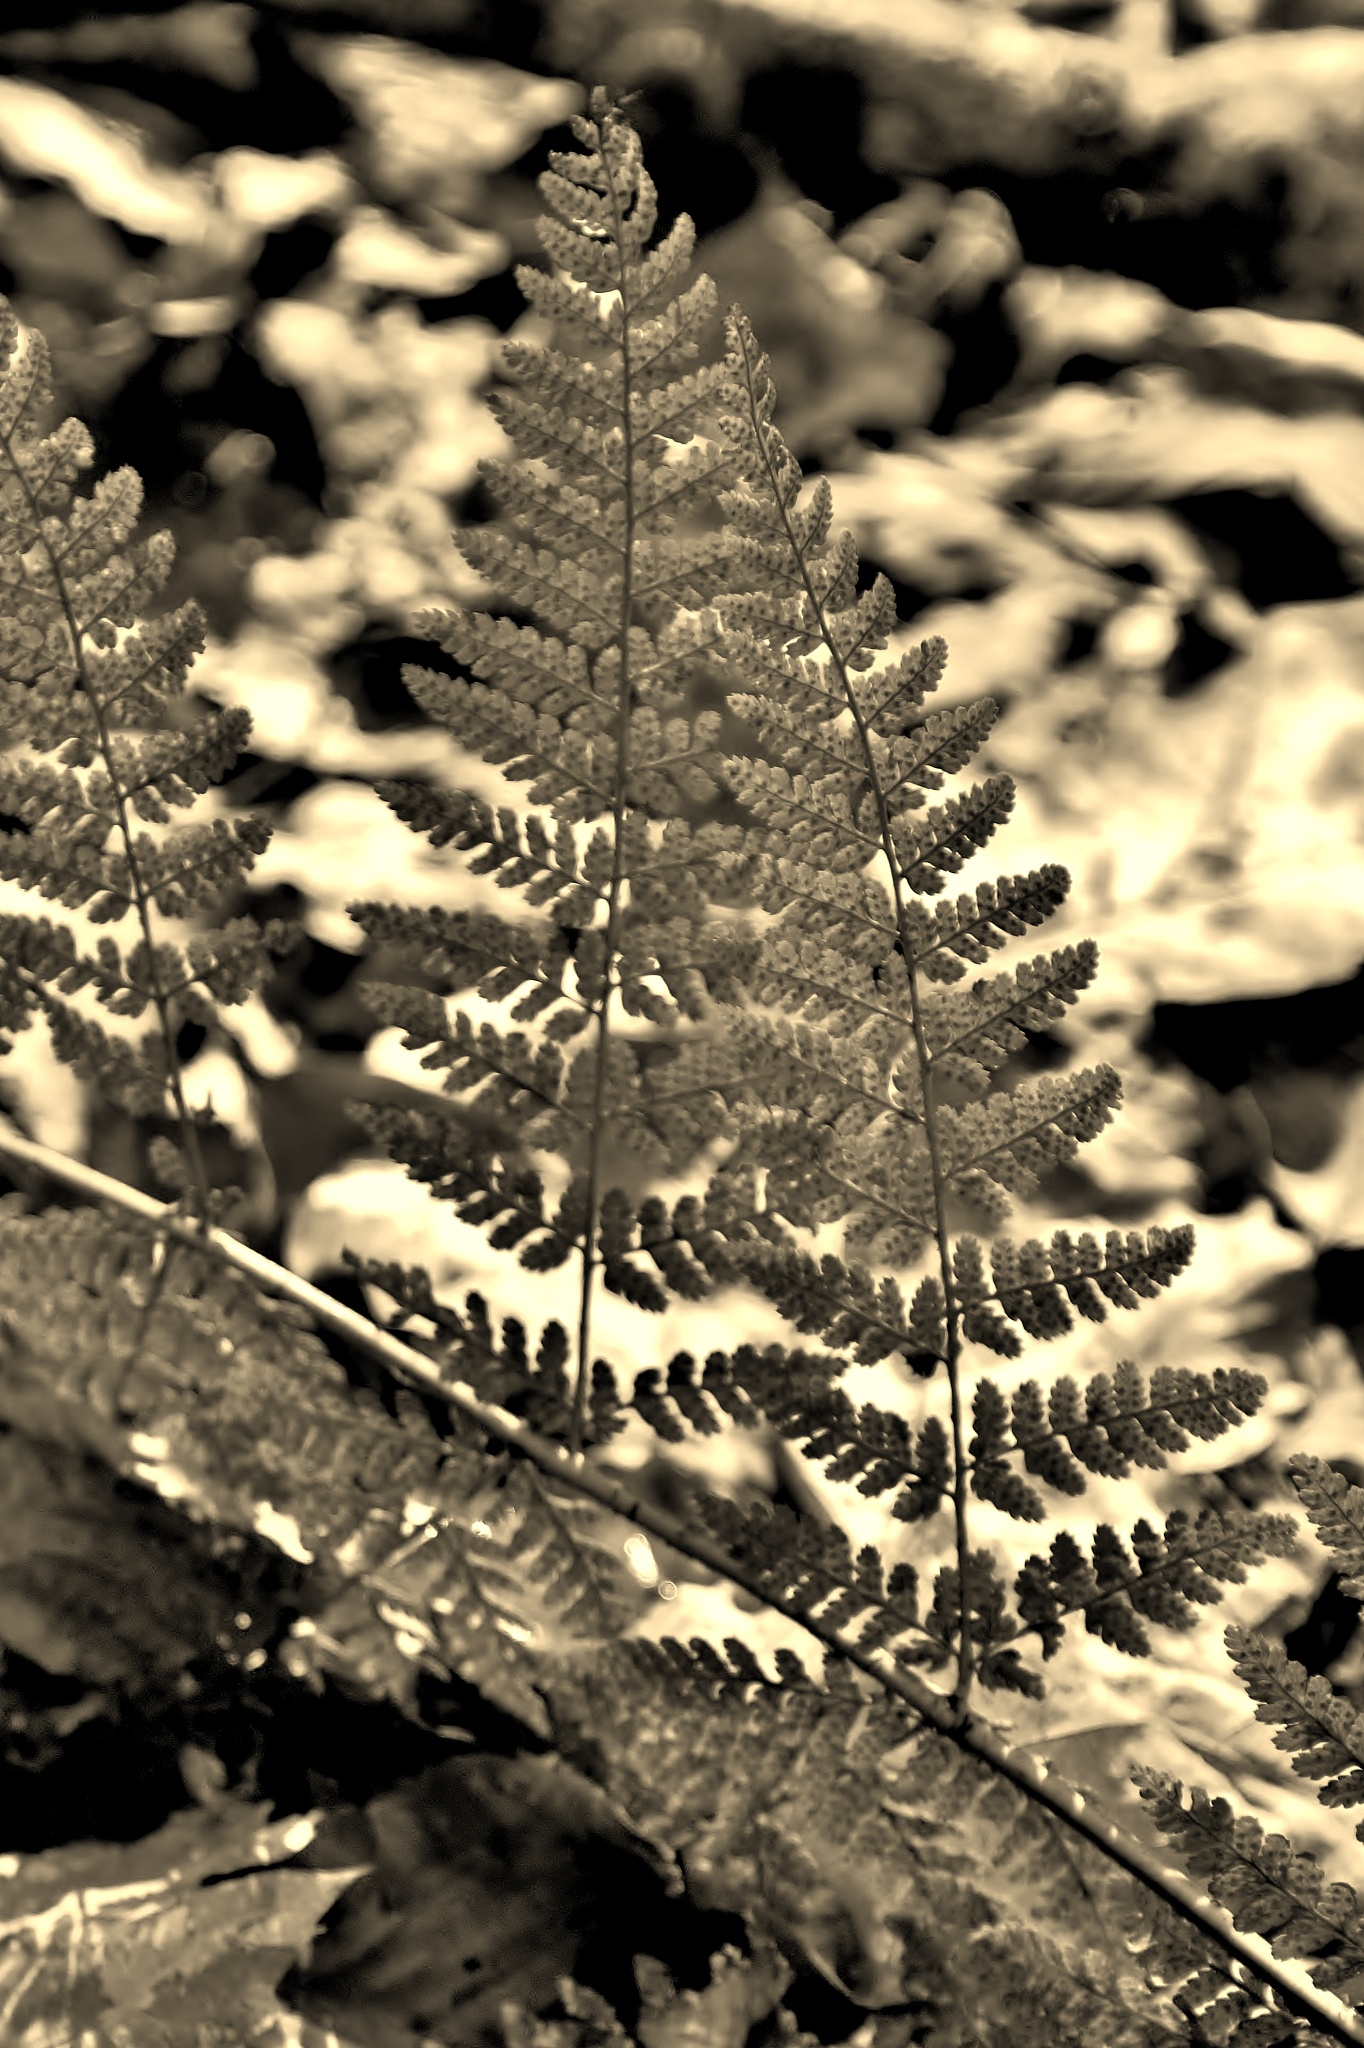 Spring Ferns On Autumn Leaves - Sepia by paul.hosker